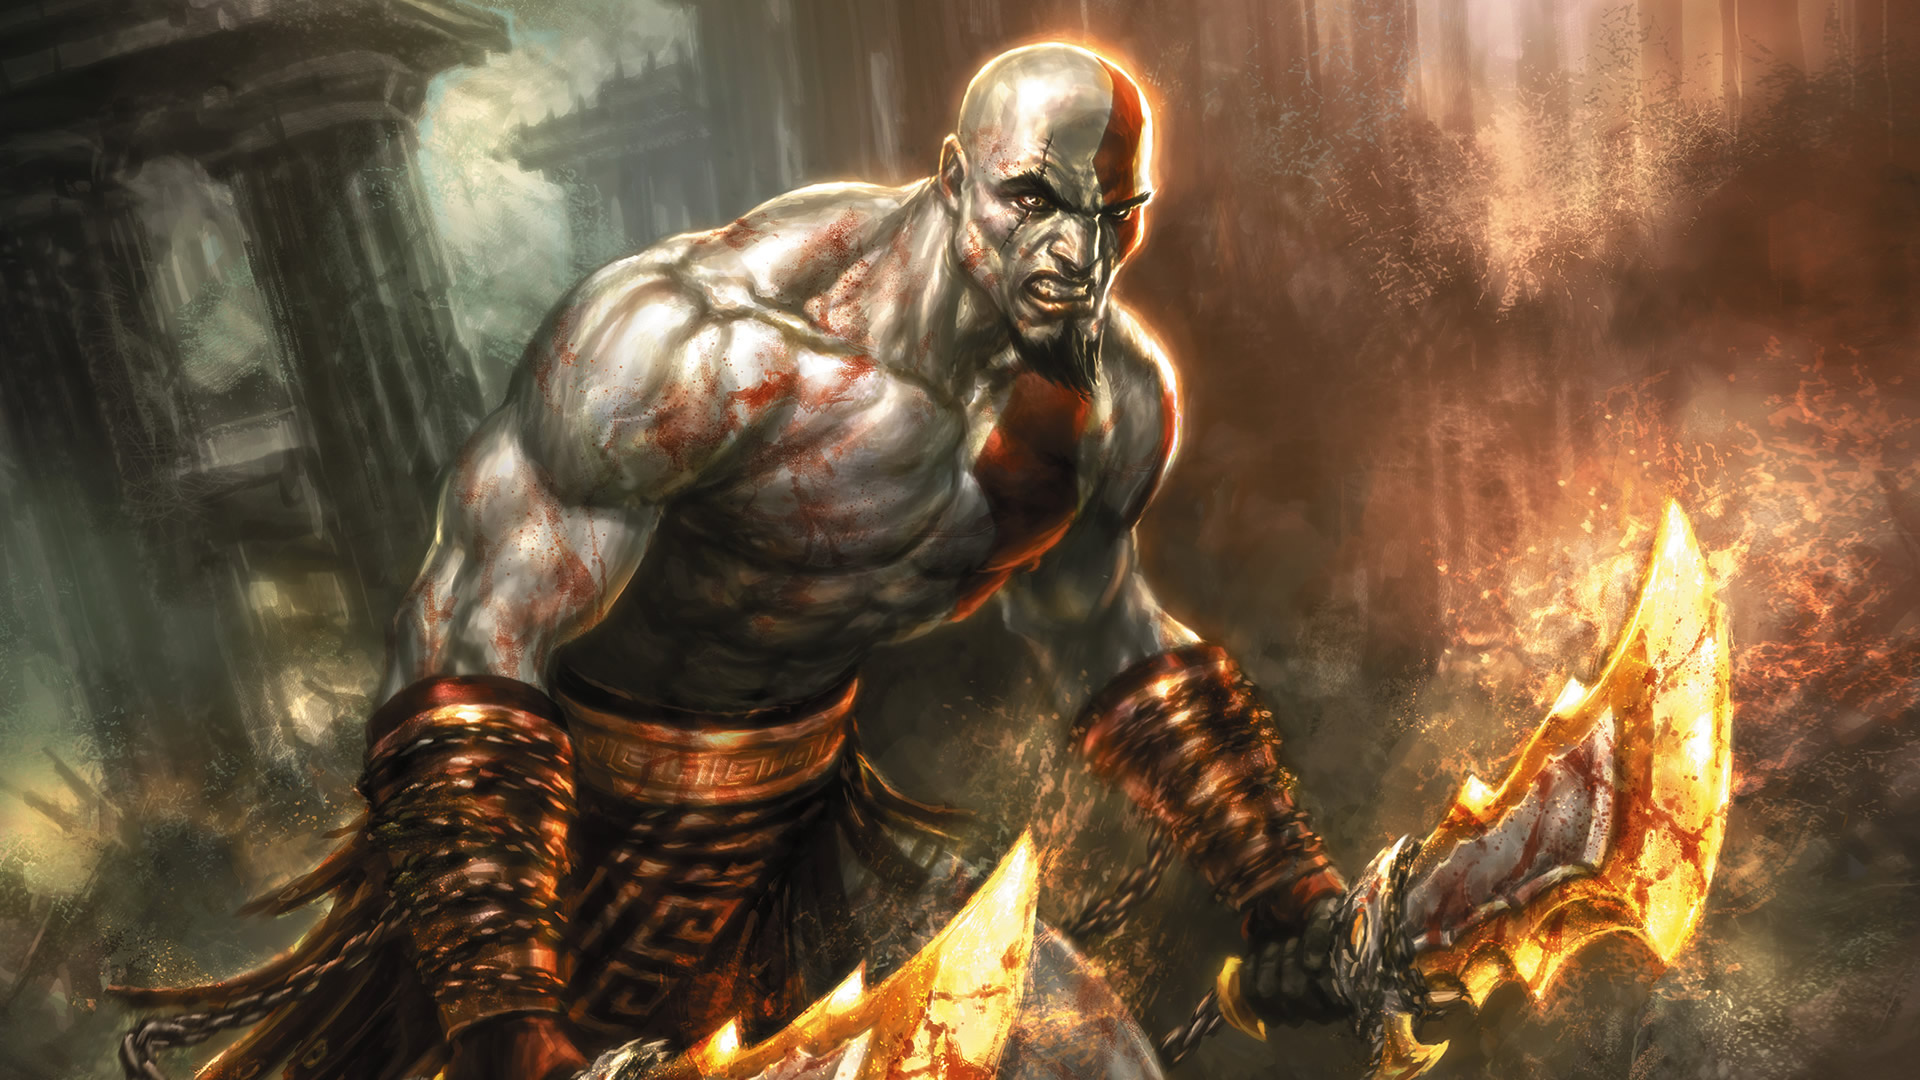 Blades Of Chaos - Action Games Wallpaper Image featuring God Of War